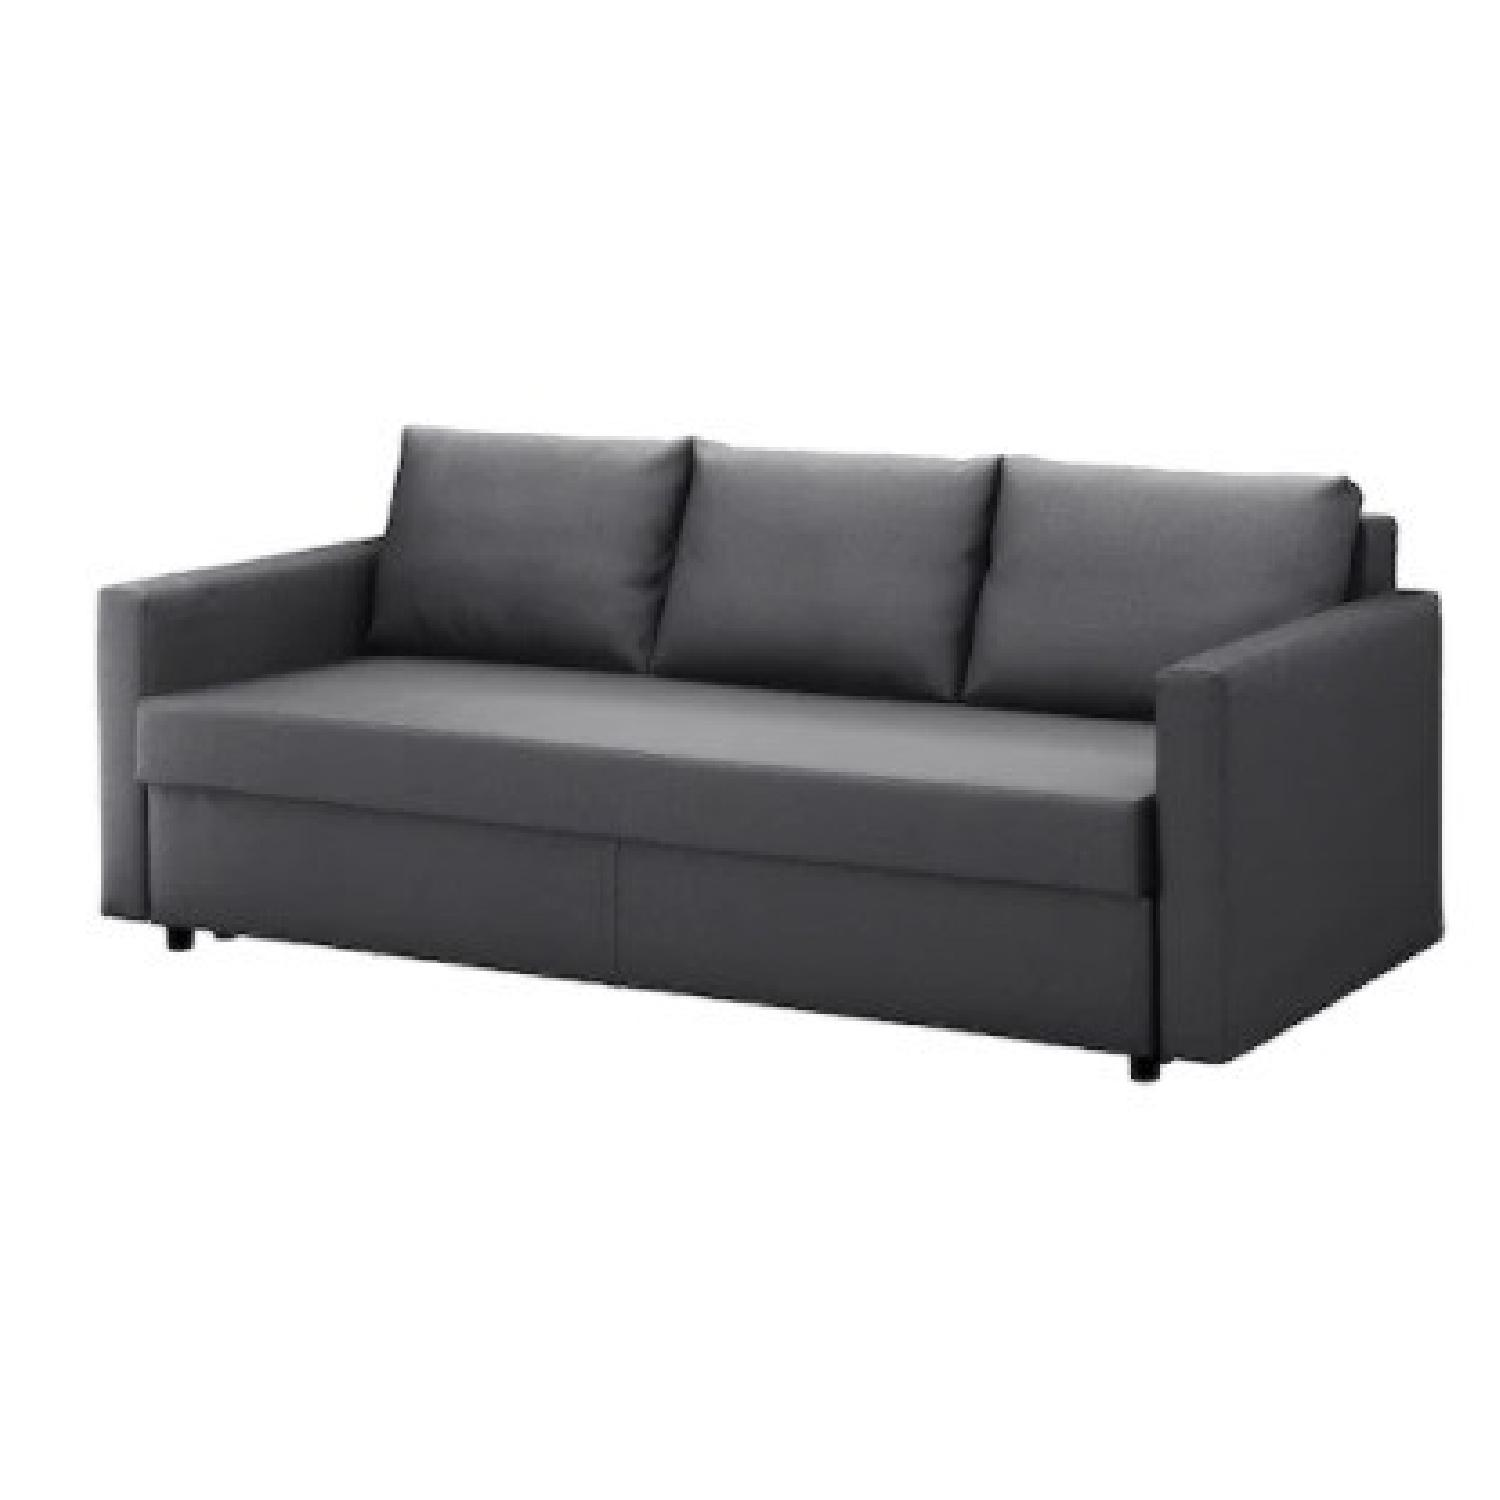 IKEA Dark Grey Sofa Bed - image-12